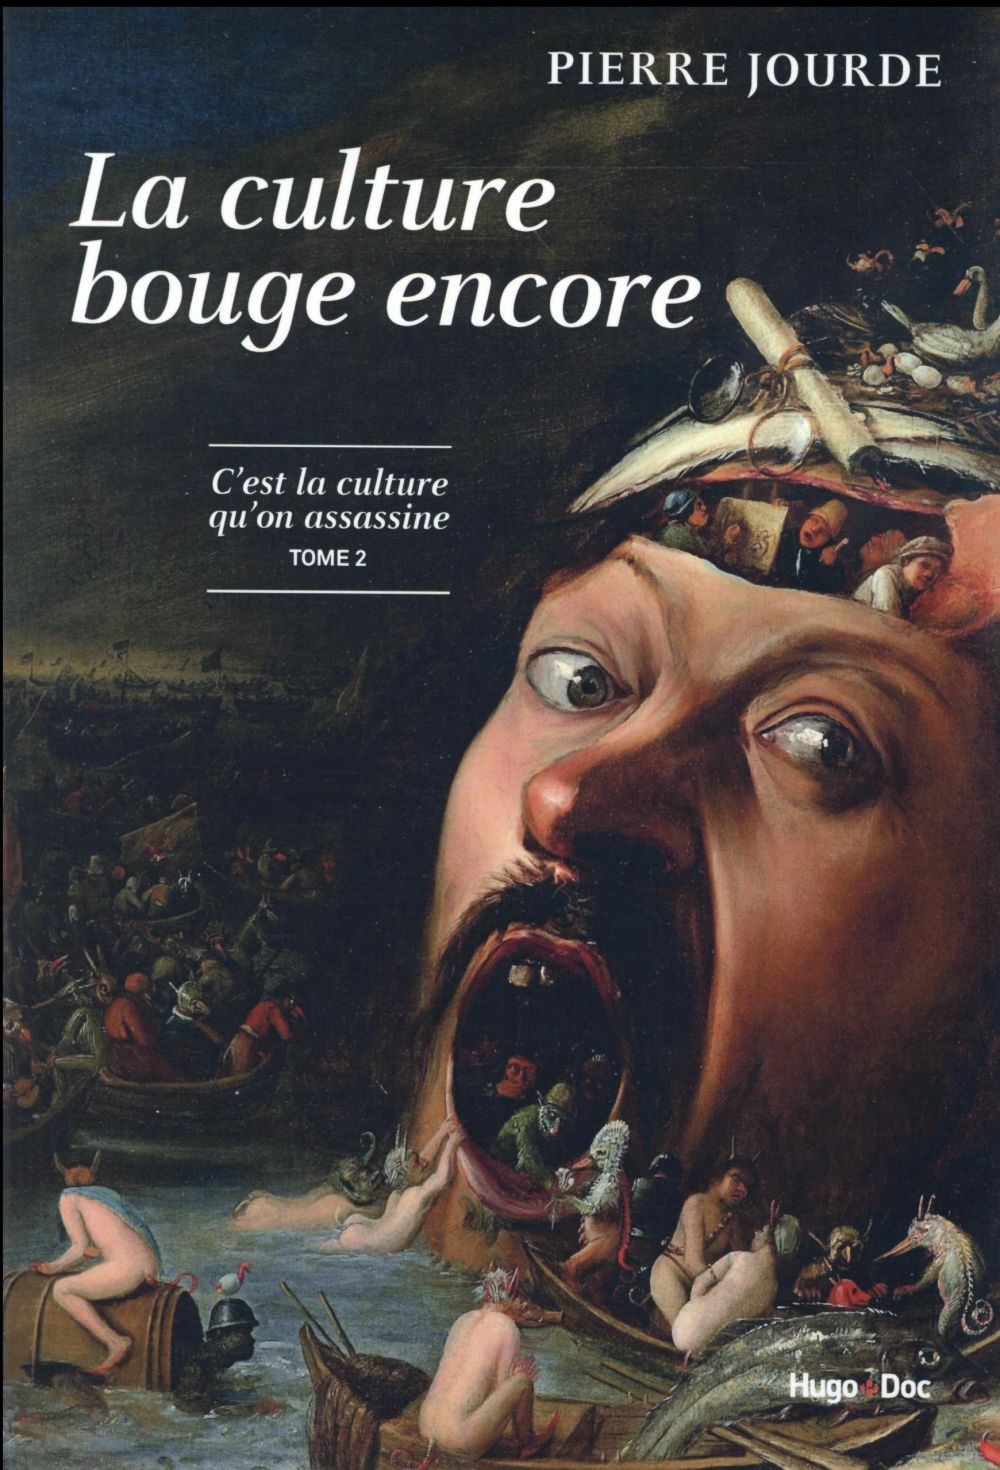 C'est la culture qu'on assassine La culture bouge encore Vol.2